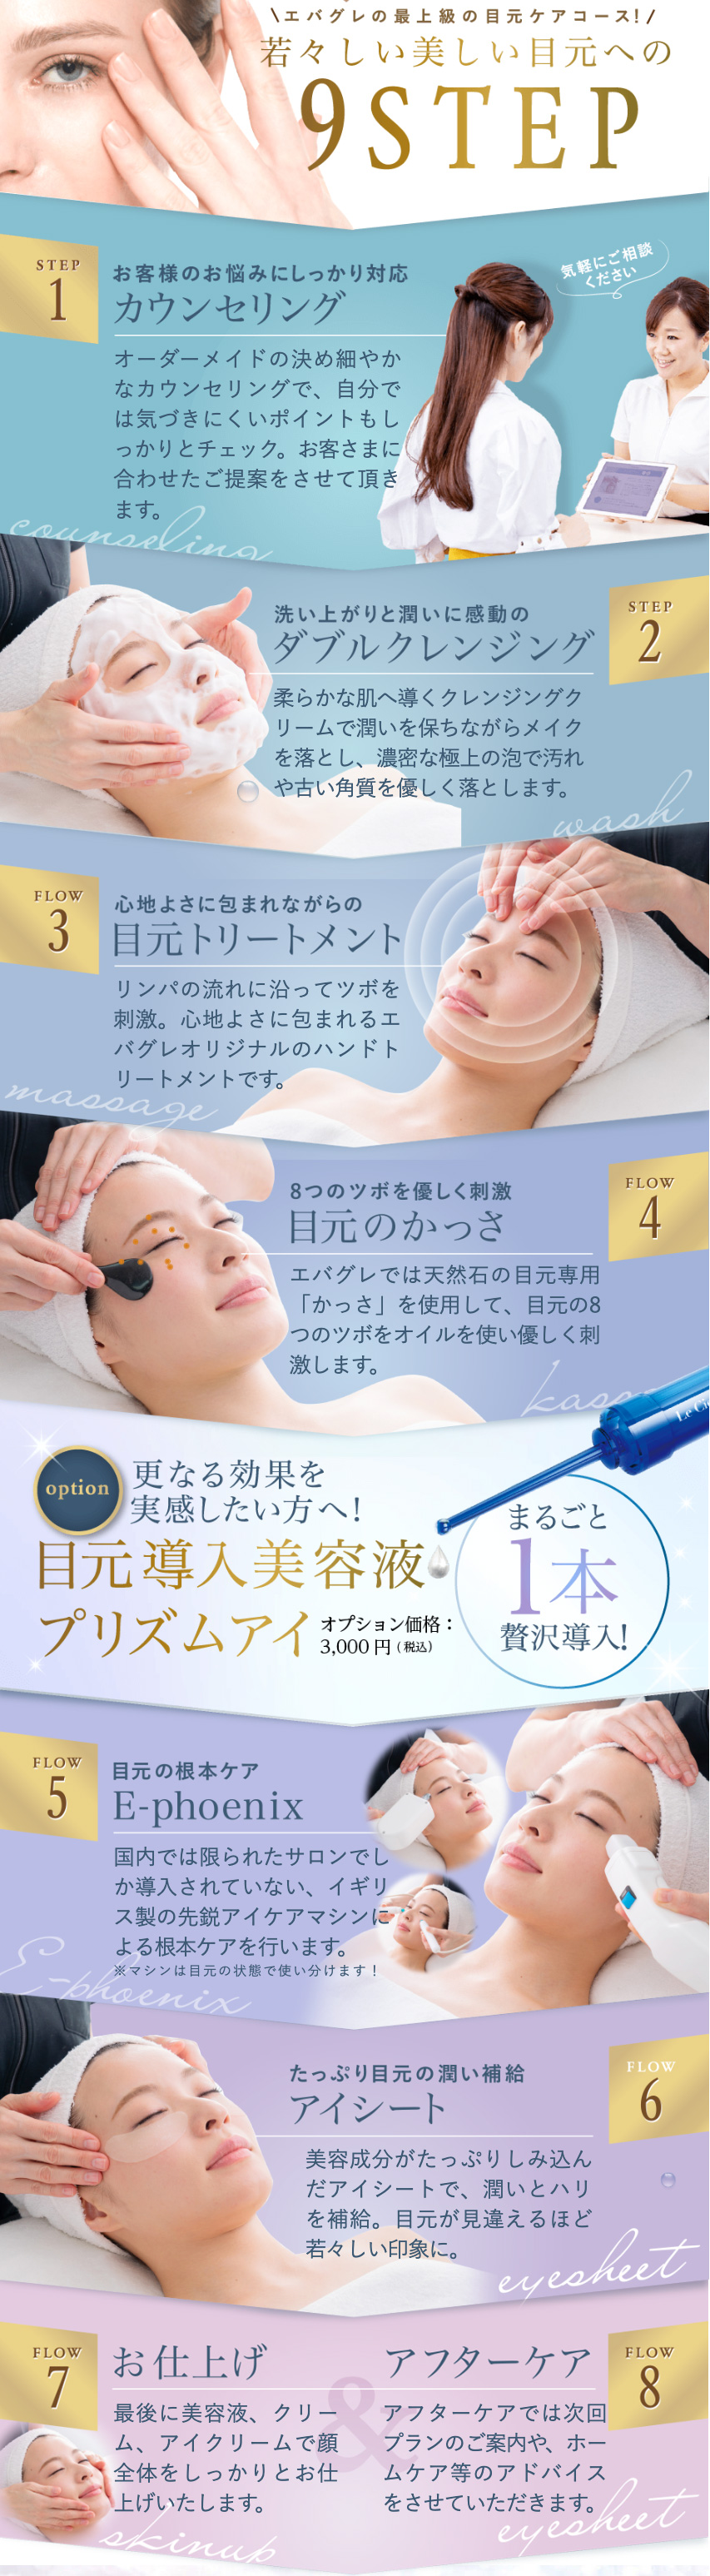 https://www.evergrace.jp/ad/eye-care/20160701_c/